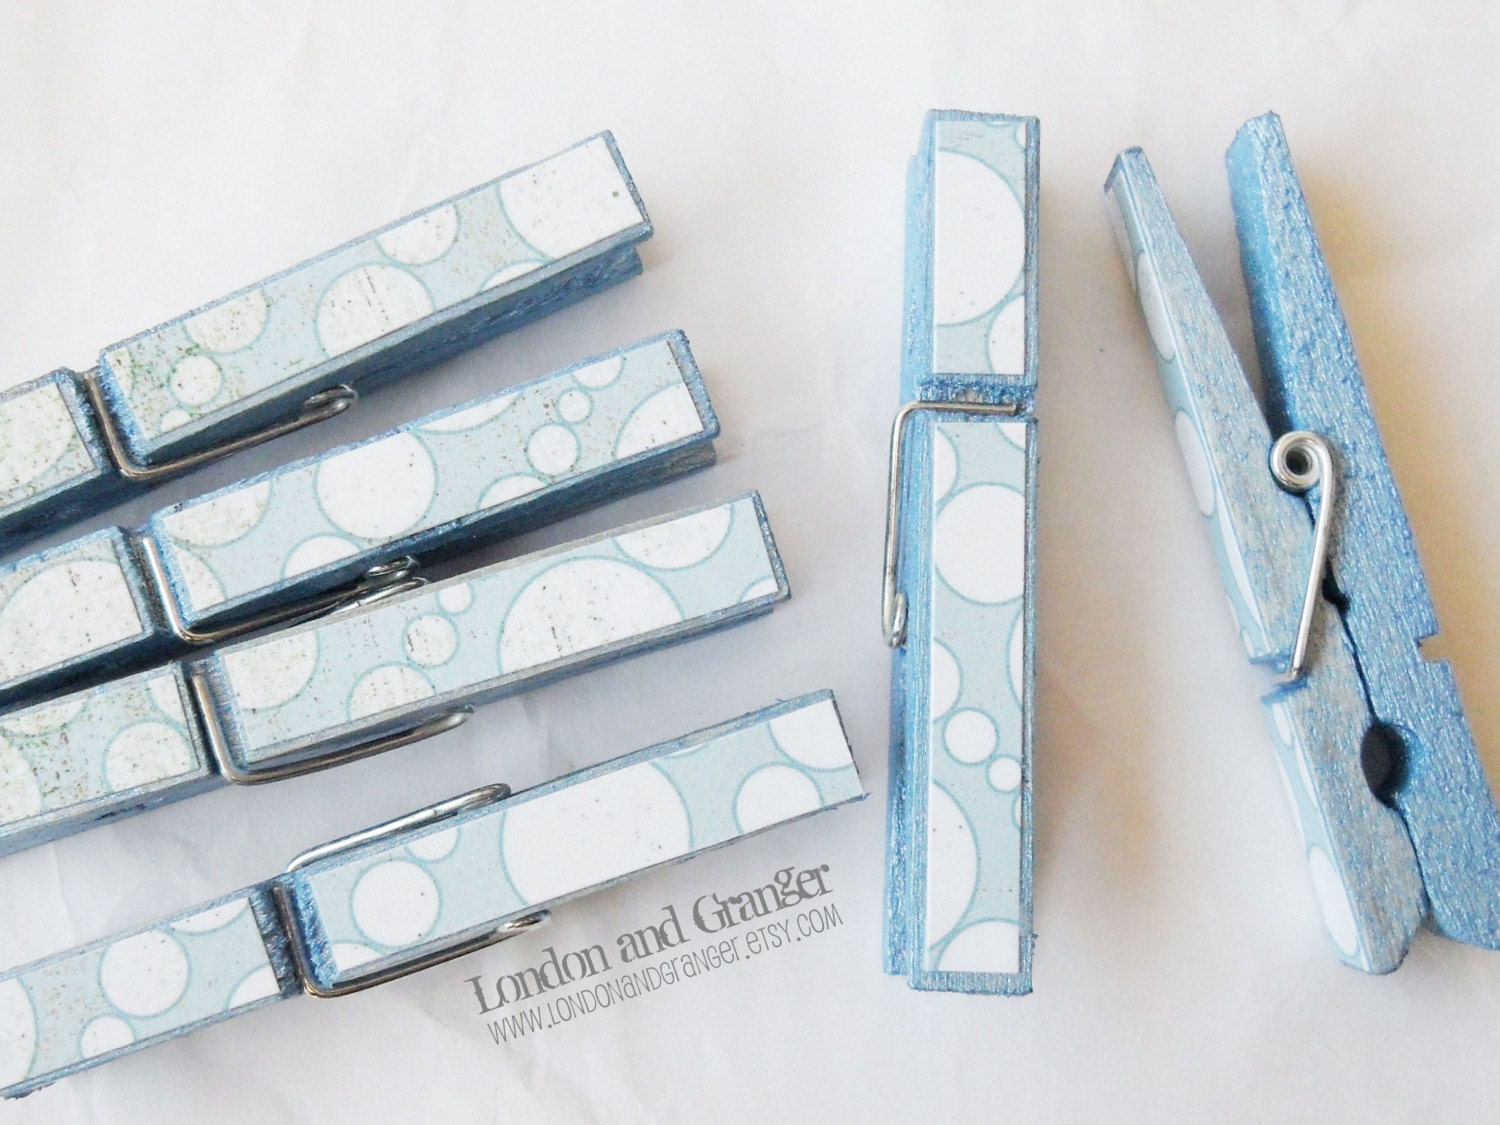 Shimmering Baby Blue and Bubbles, Hand Painted Clothespins, Something Blue, Baby Shower Gift, Home Decor (set of 6) - LondonandGranger